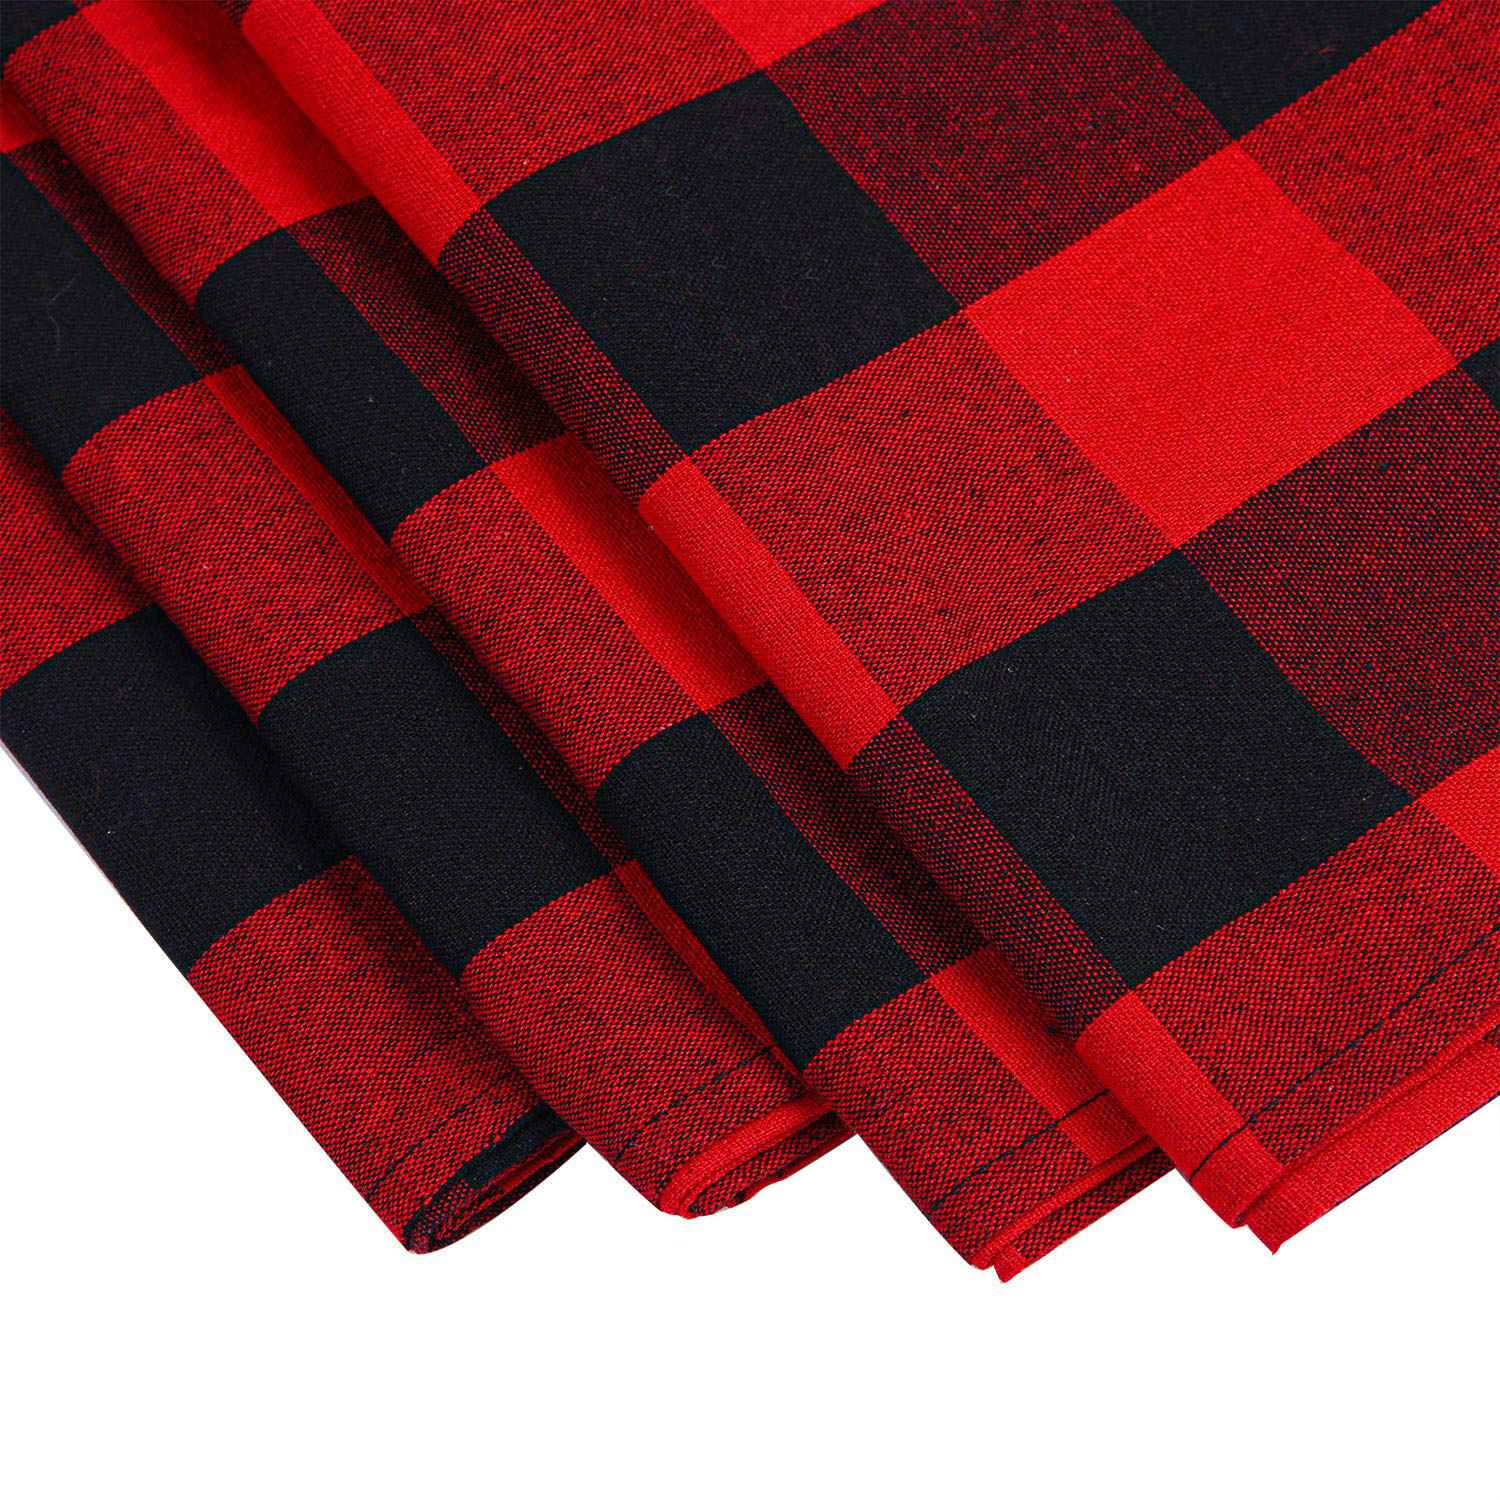 4-Pack-Checkered-Table-Runner-Cotton-Plaid-Table-Runner-Modern-Plaid-Design-U2L6 thumbnail 6